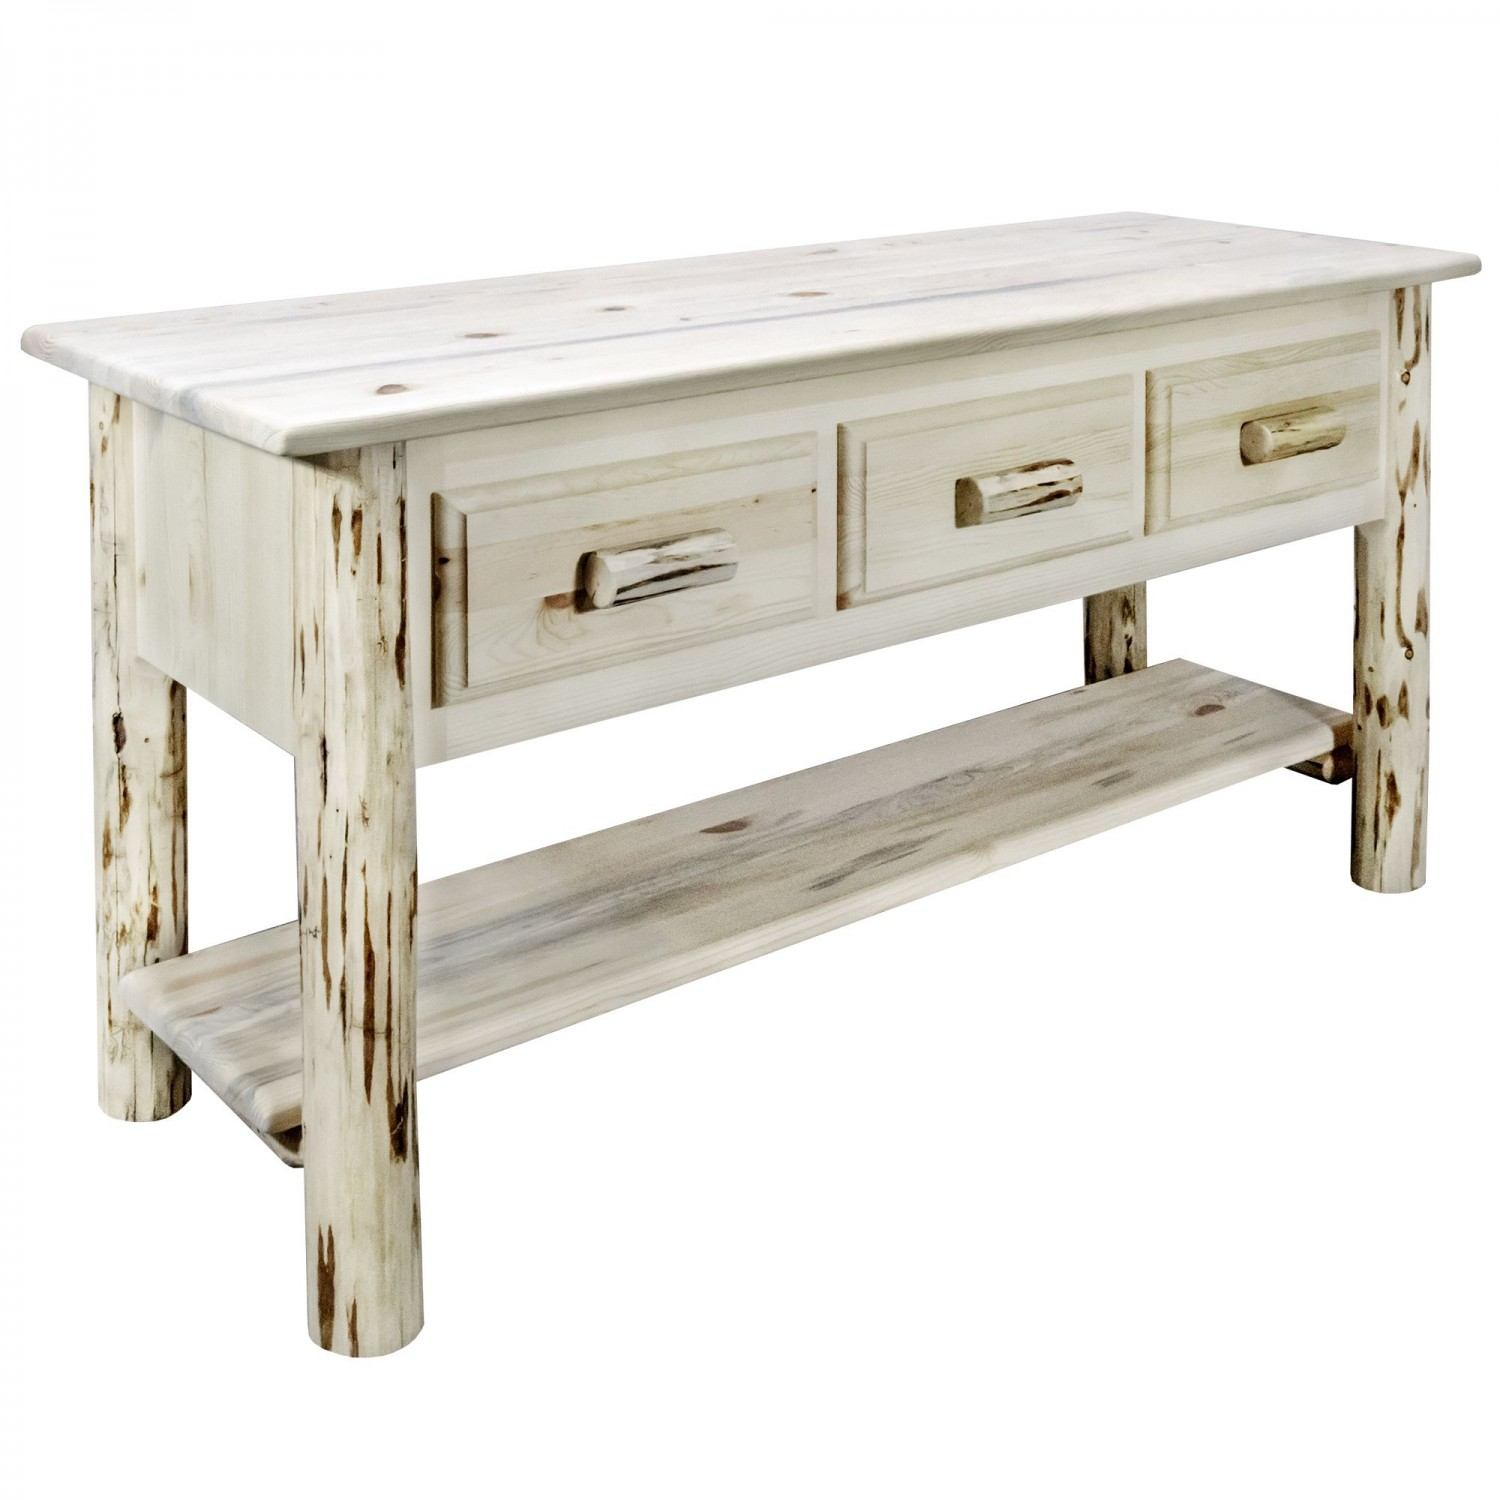 Admirable Rustic Pine Console Table W 3 Drawers Mw Interior Design Ideas Oxytryabchikinfo